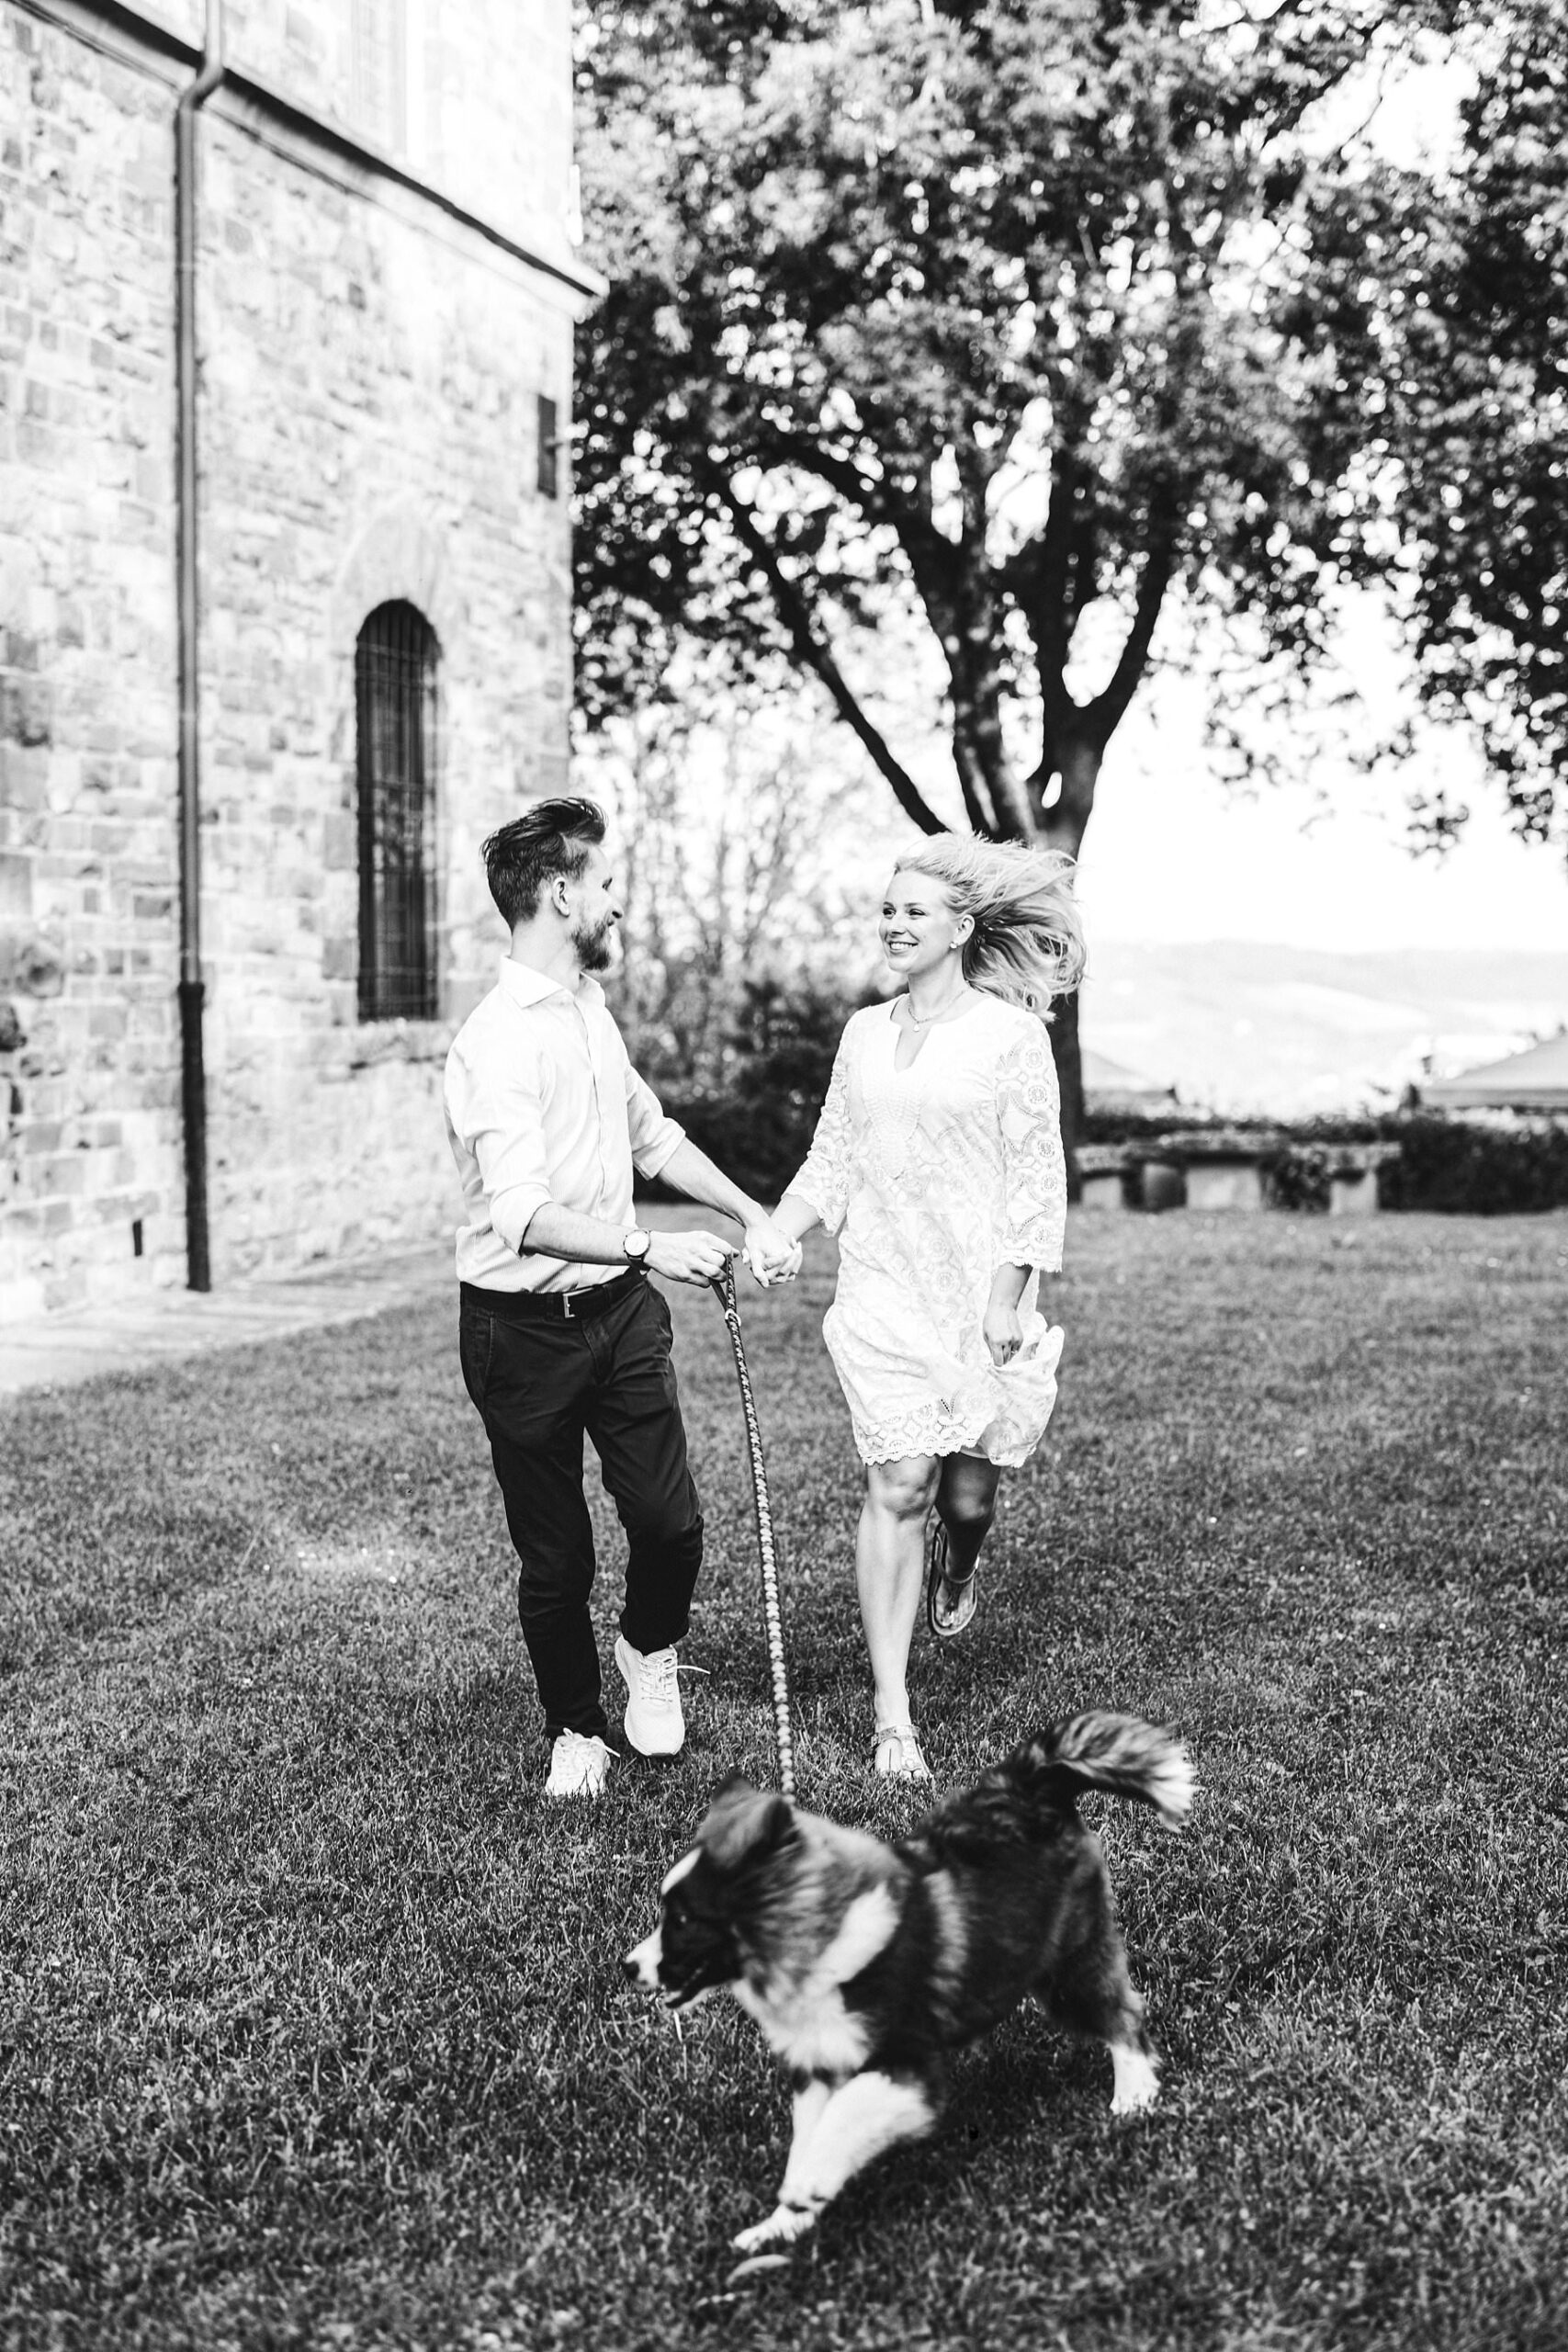 Enjoy time and create everlasting memories with your fiancée and your lovely furry friend with an engagement photo shoot in Tuscany countryside at Poggio Tre Lune